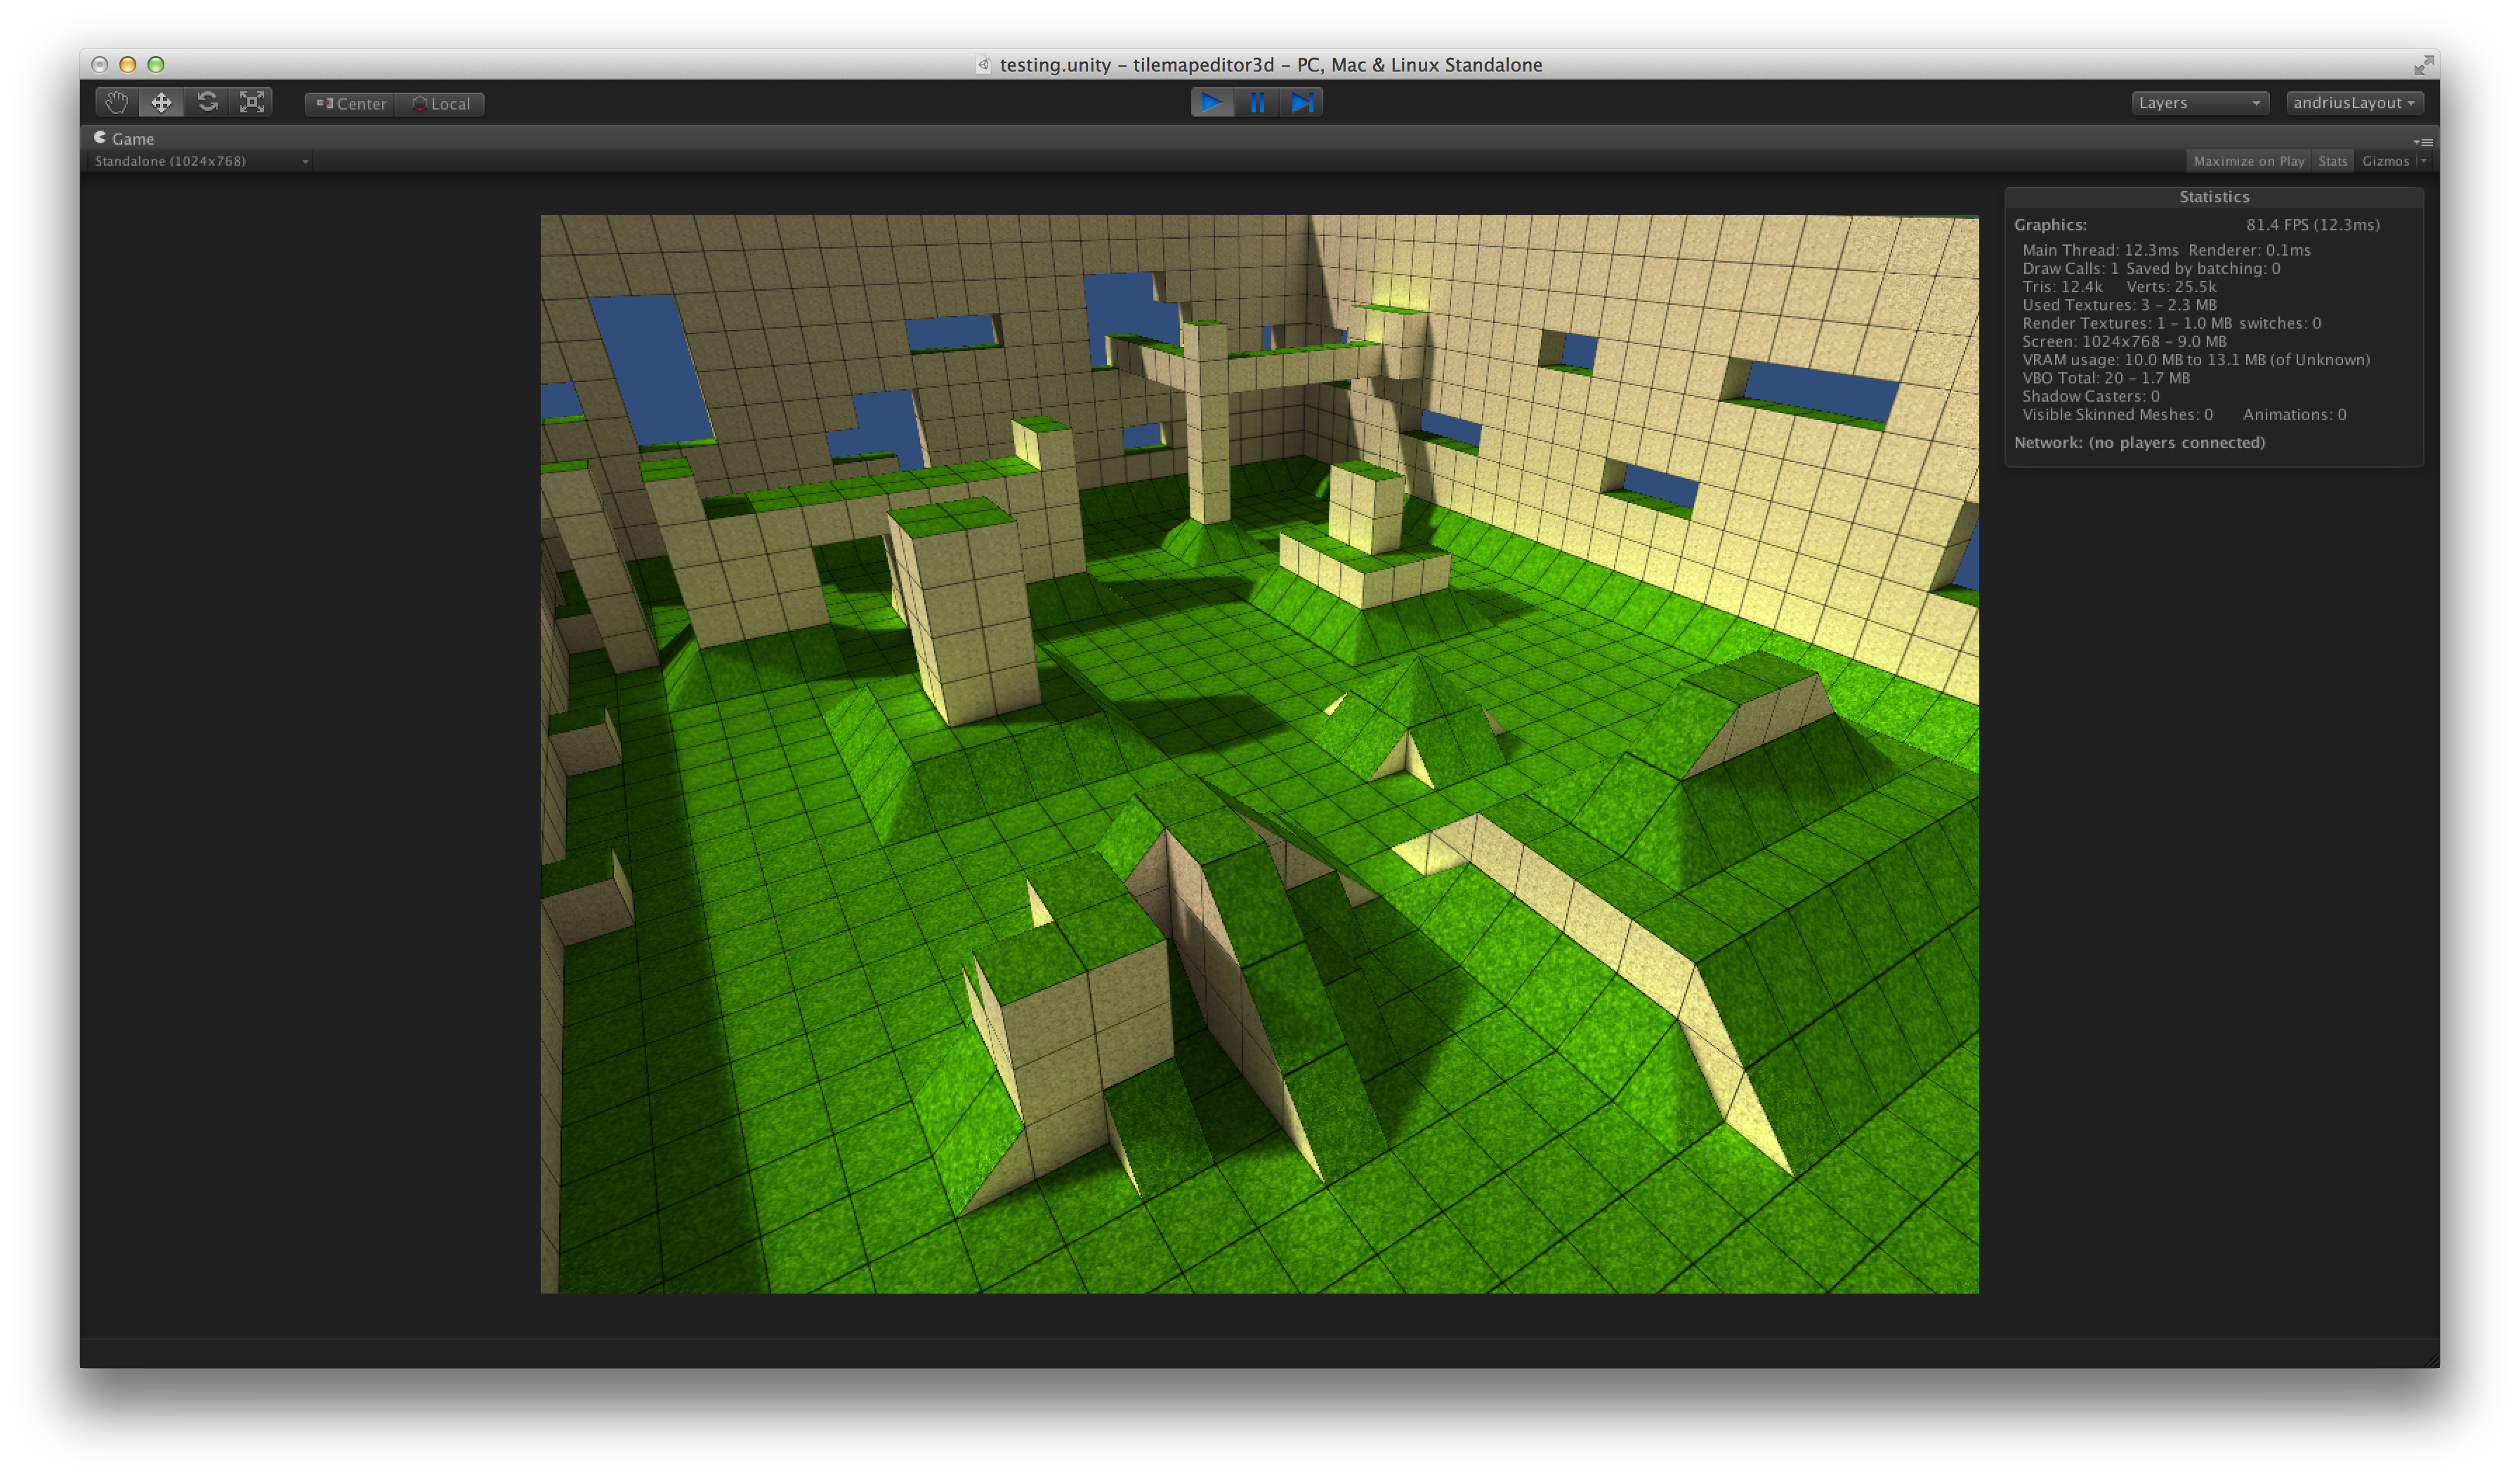 protile map editor 2 unity editor extension 3d Tile Map Editor 3d Tile Map Editor #3 3d tile map editor